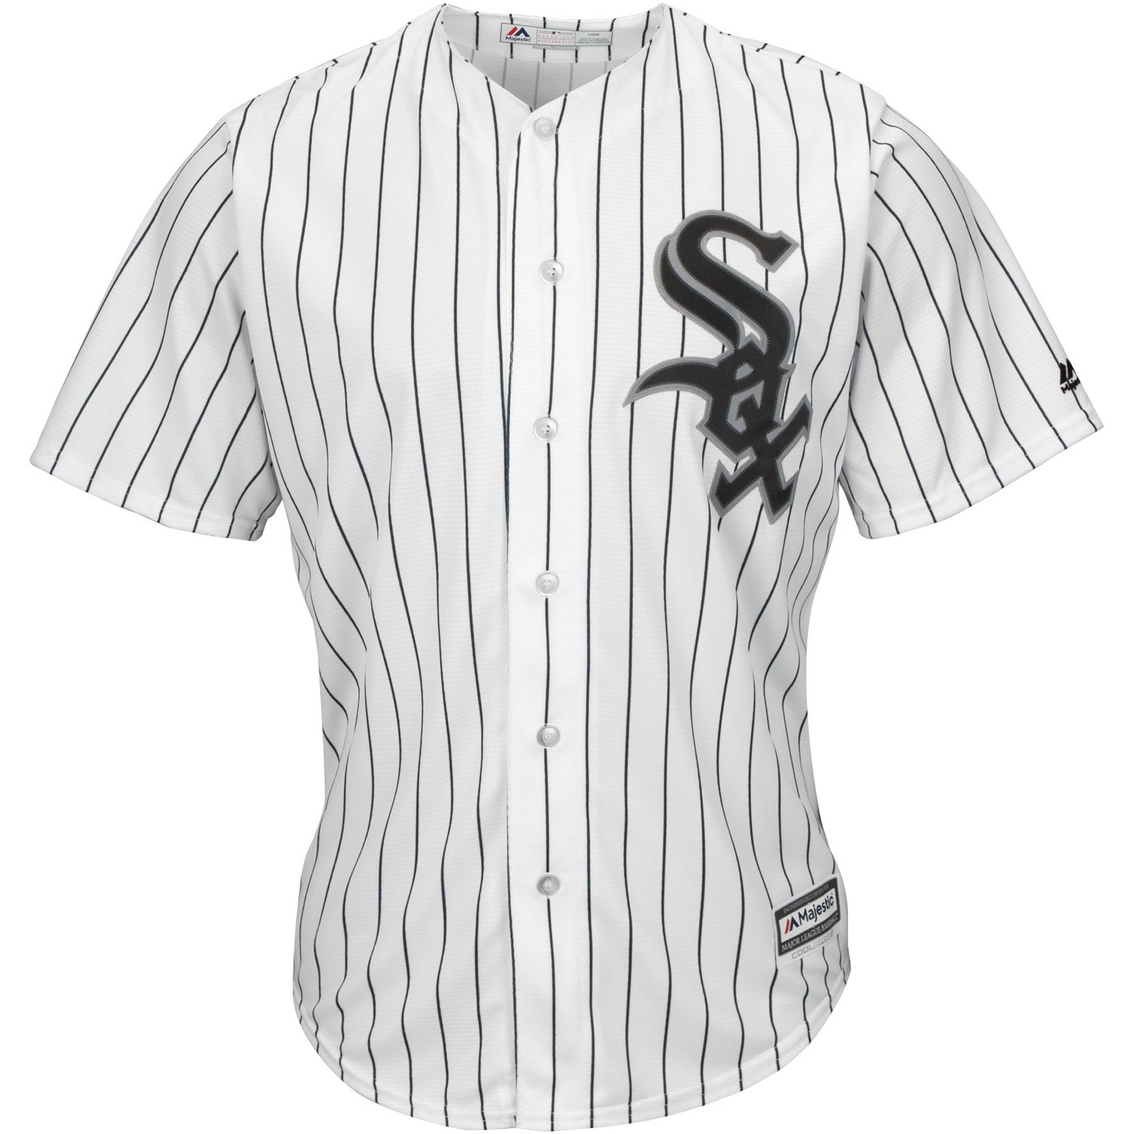 b71a5f916 Majestic Mlb Chicago White Sox Home Replica Jersey | Shirts ...